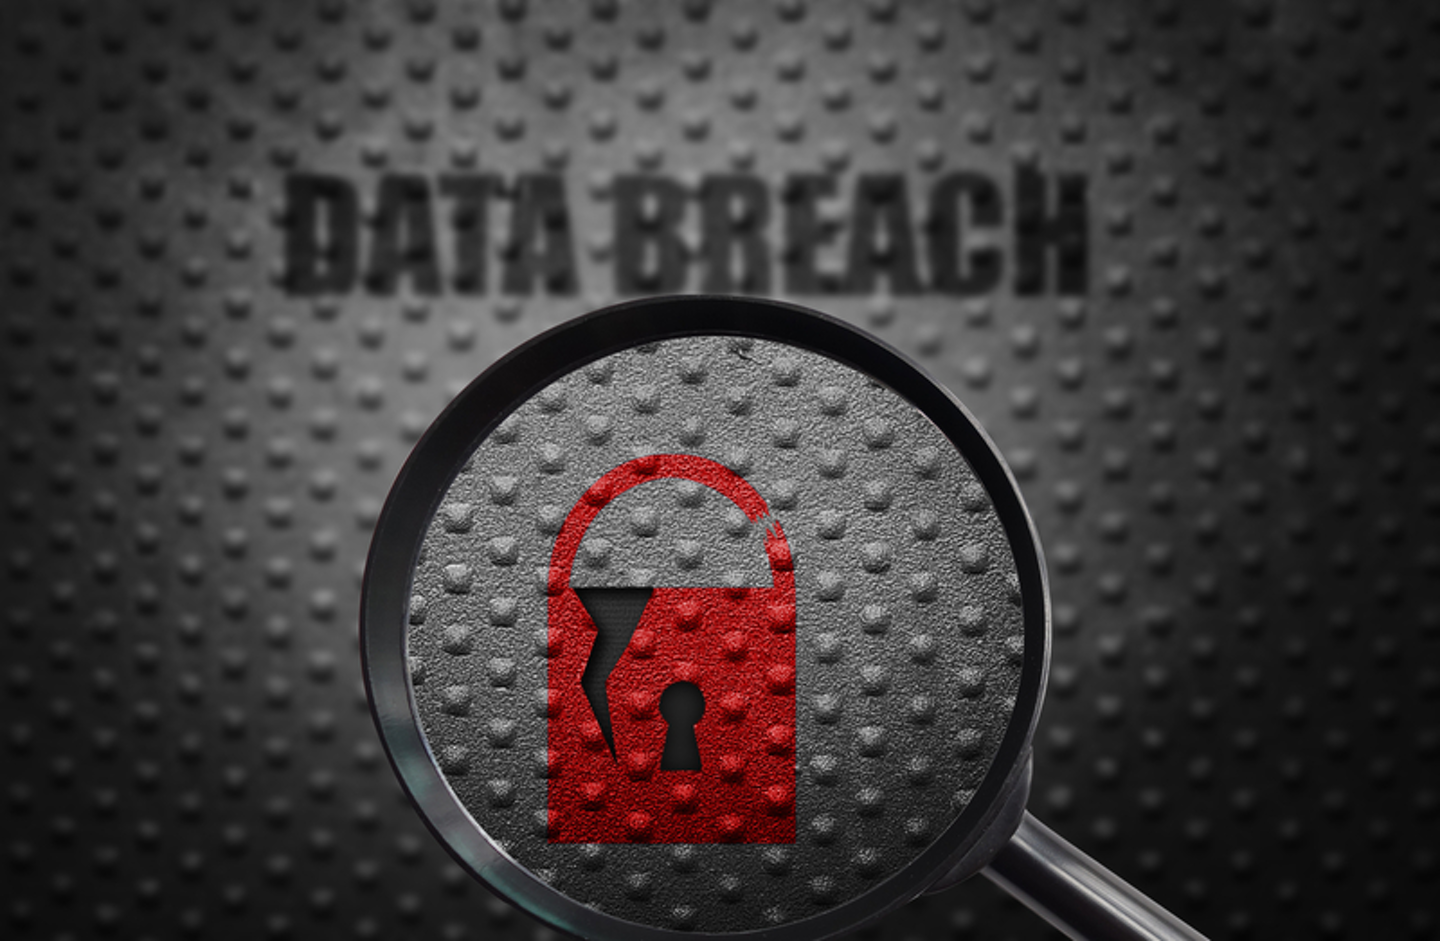 CynergisTek's Barlow: We Need to Think About COVID-19 Data-Related Breaches Going Forward